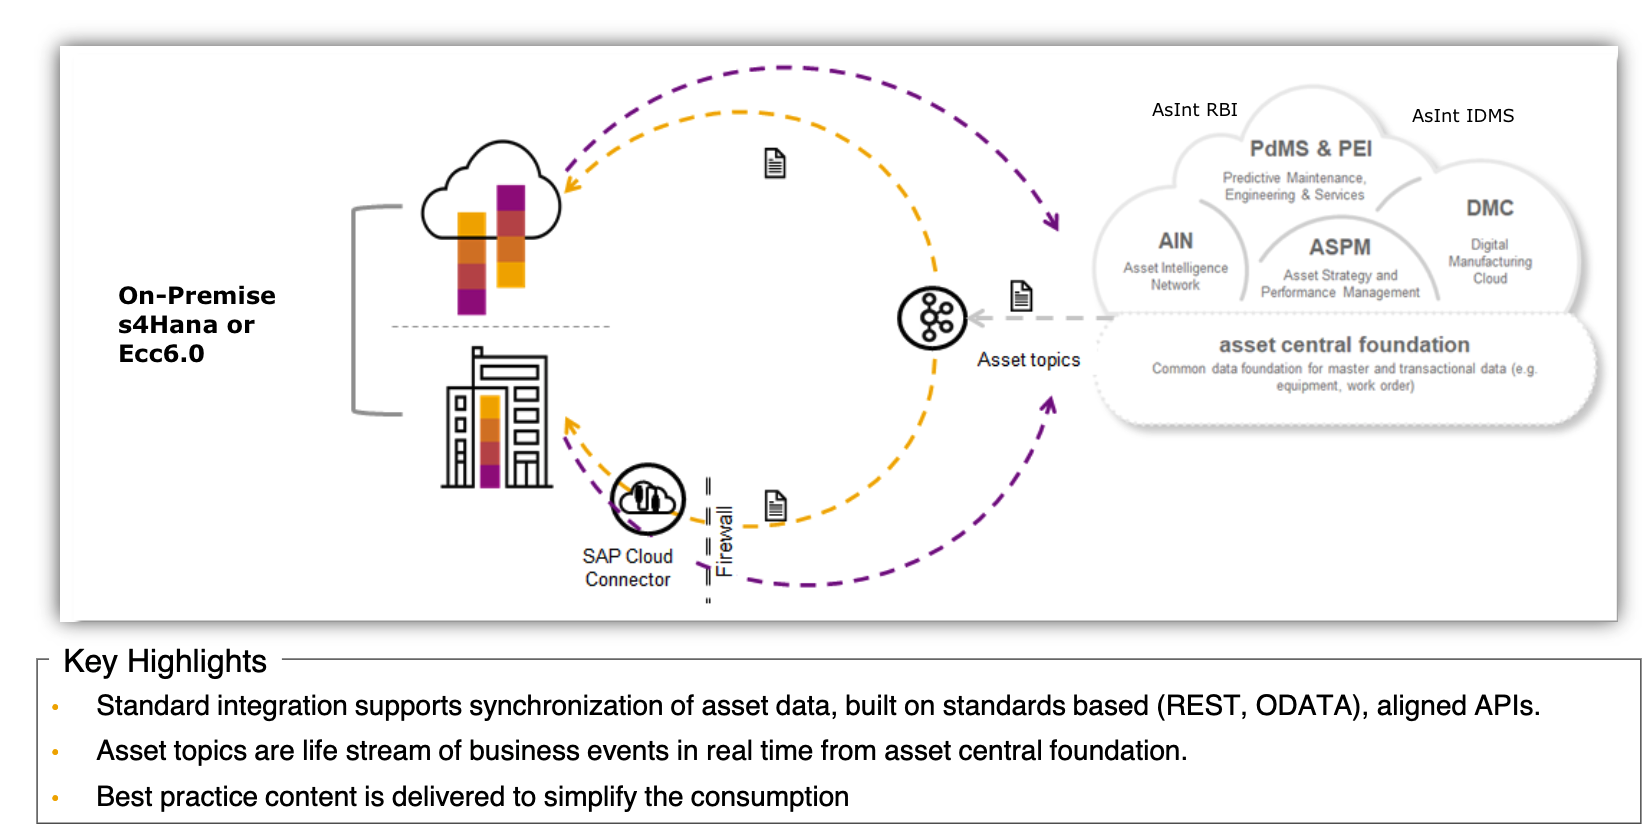 Sap Iam Intelligent Asset Management Asint